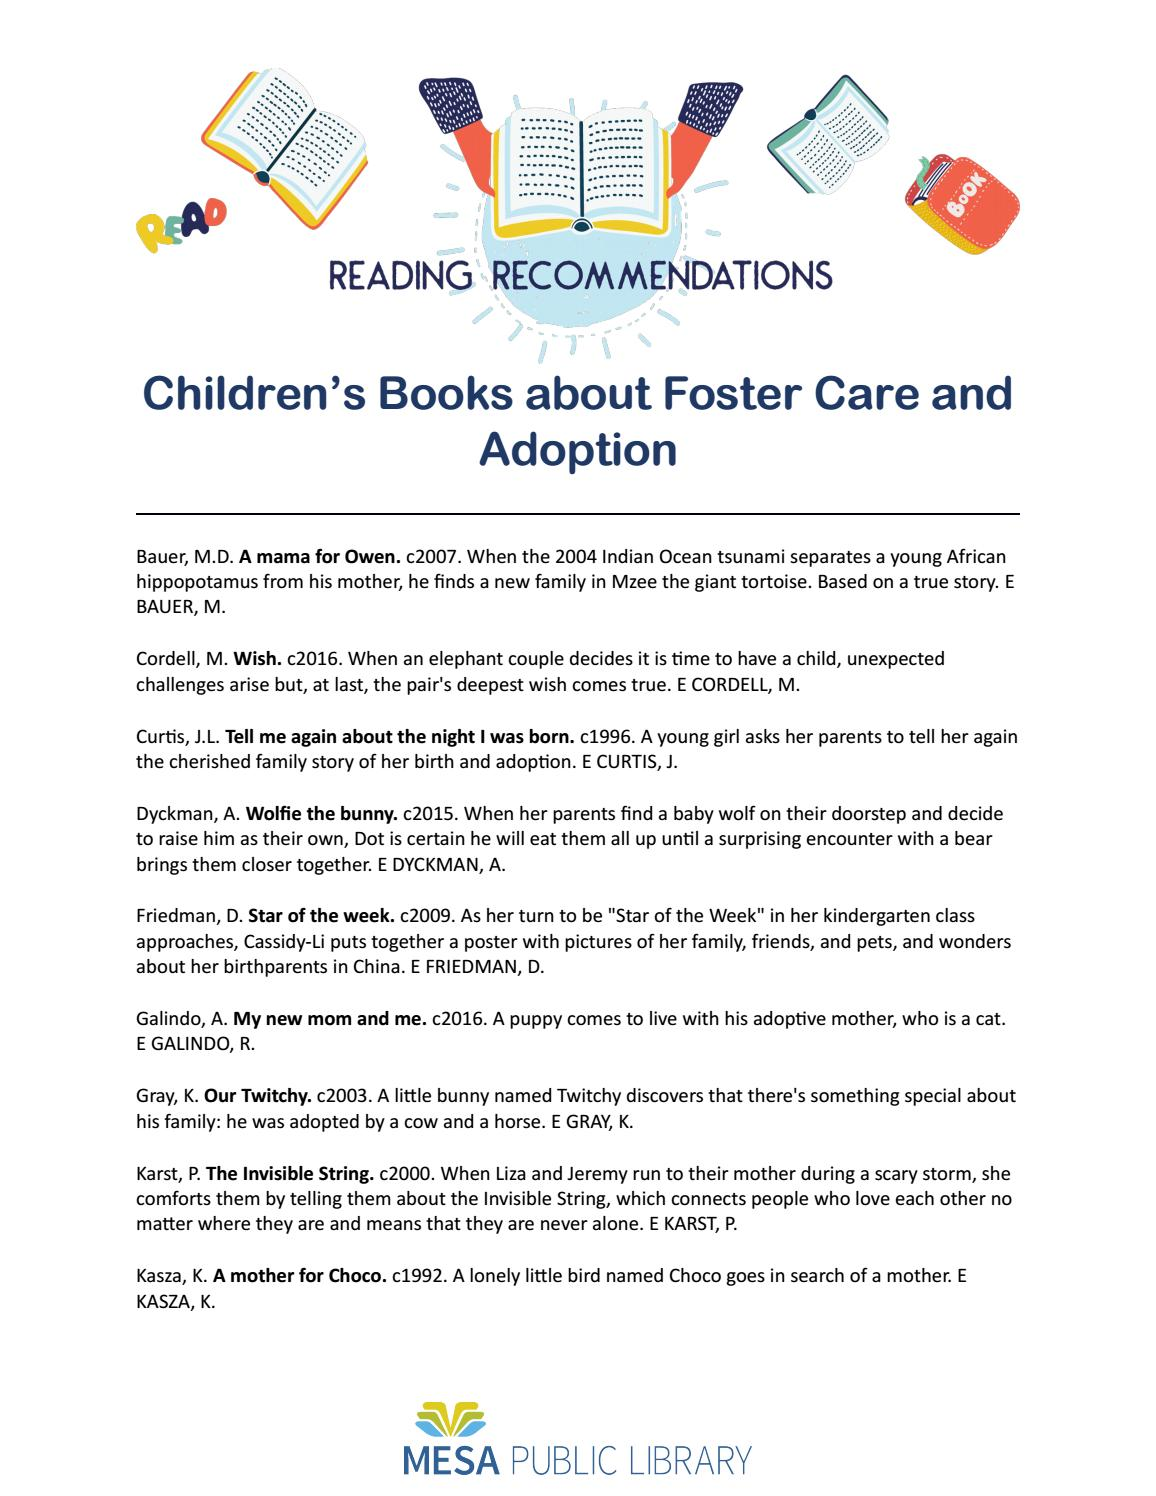 Childrens Books About Foster Care And Adoption By Cityofmesa Issuu